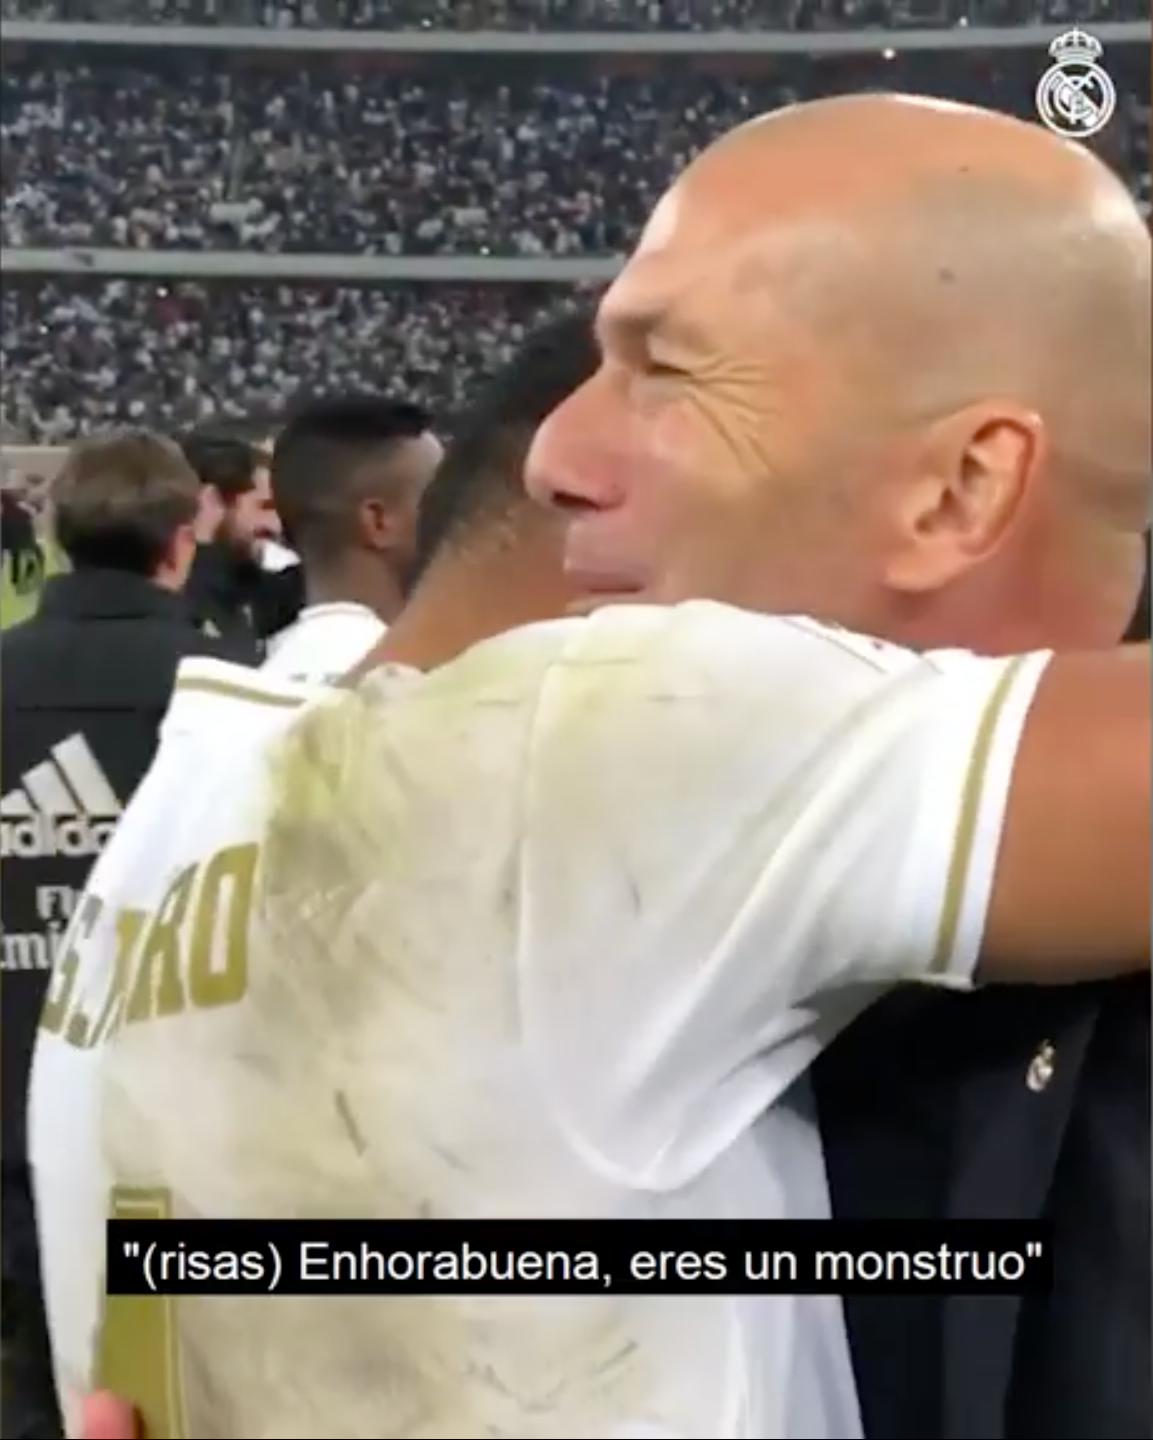 Zidane to Casemiro: Once again, well done you monster! - Bóng Đá